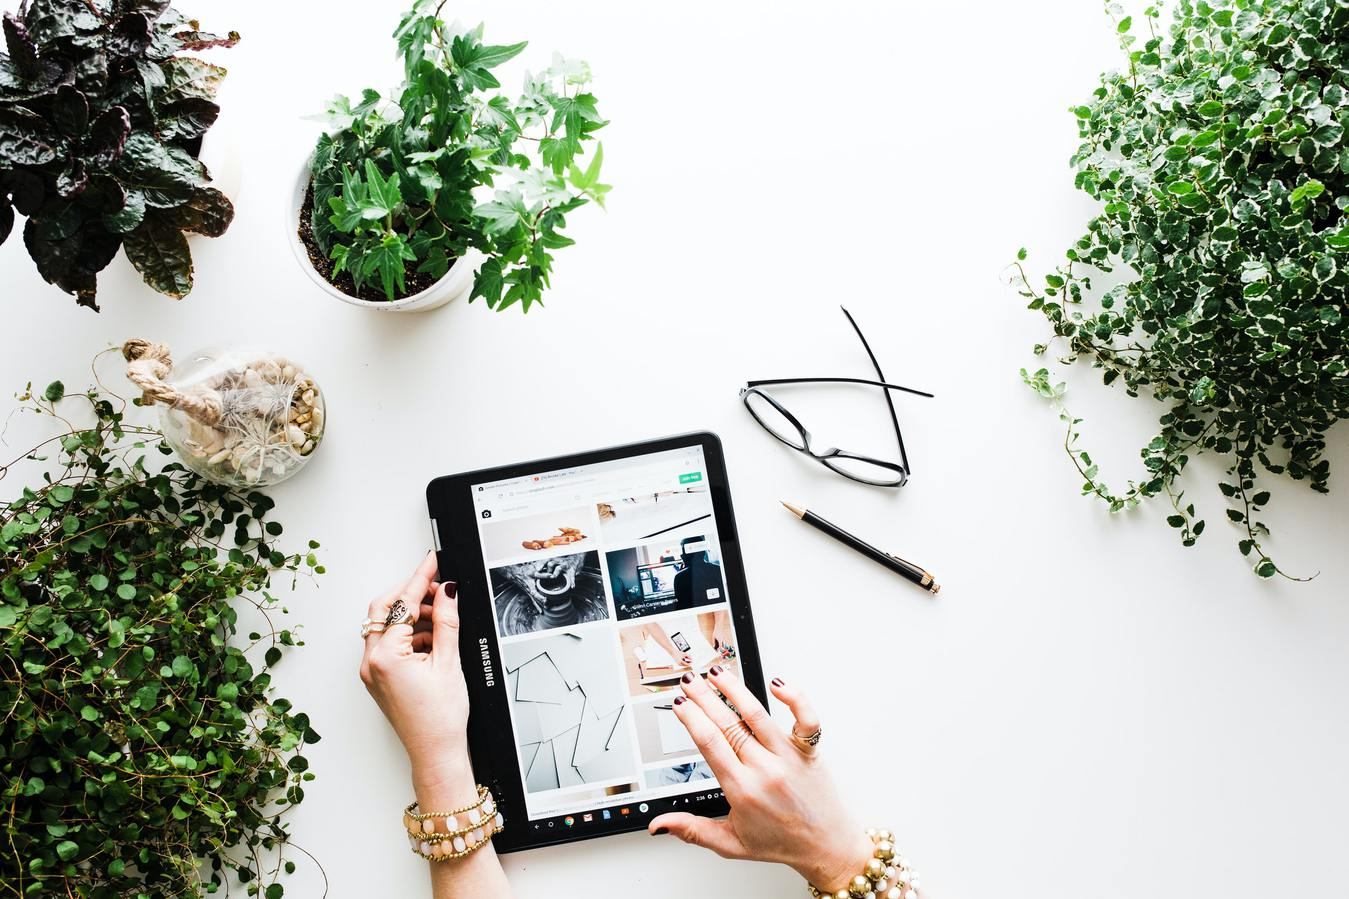 e-commerce tablet en planten